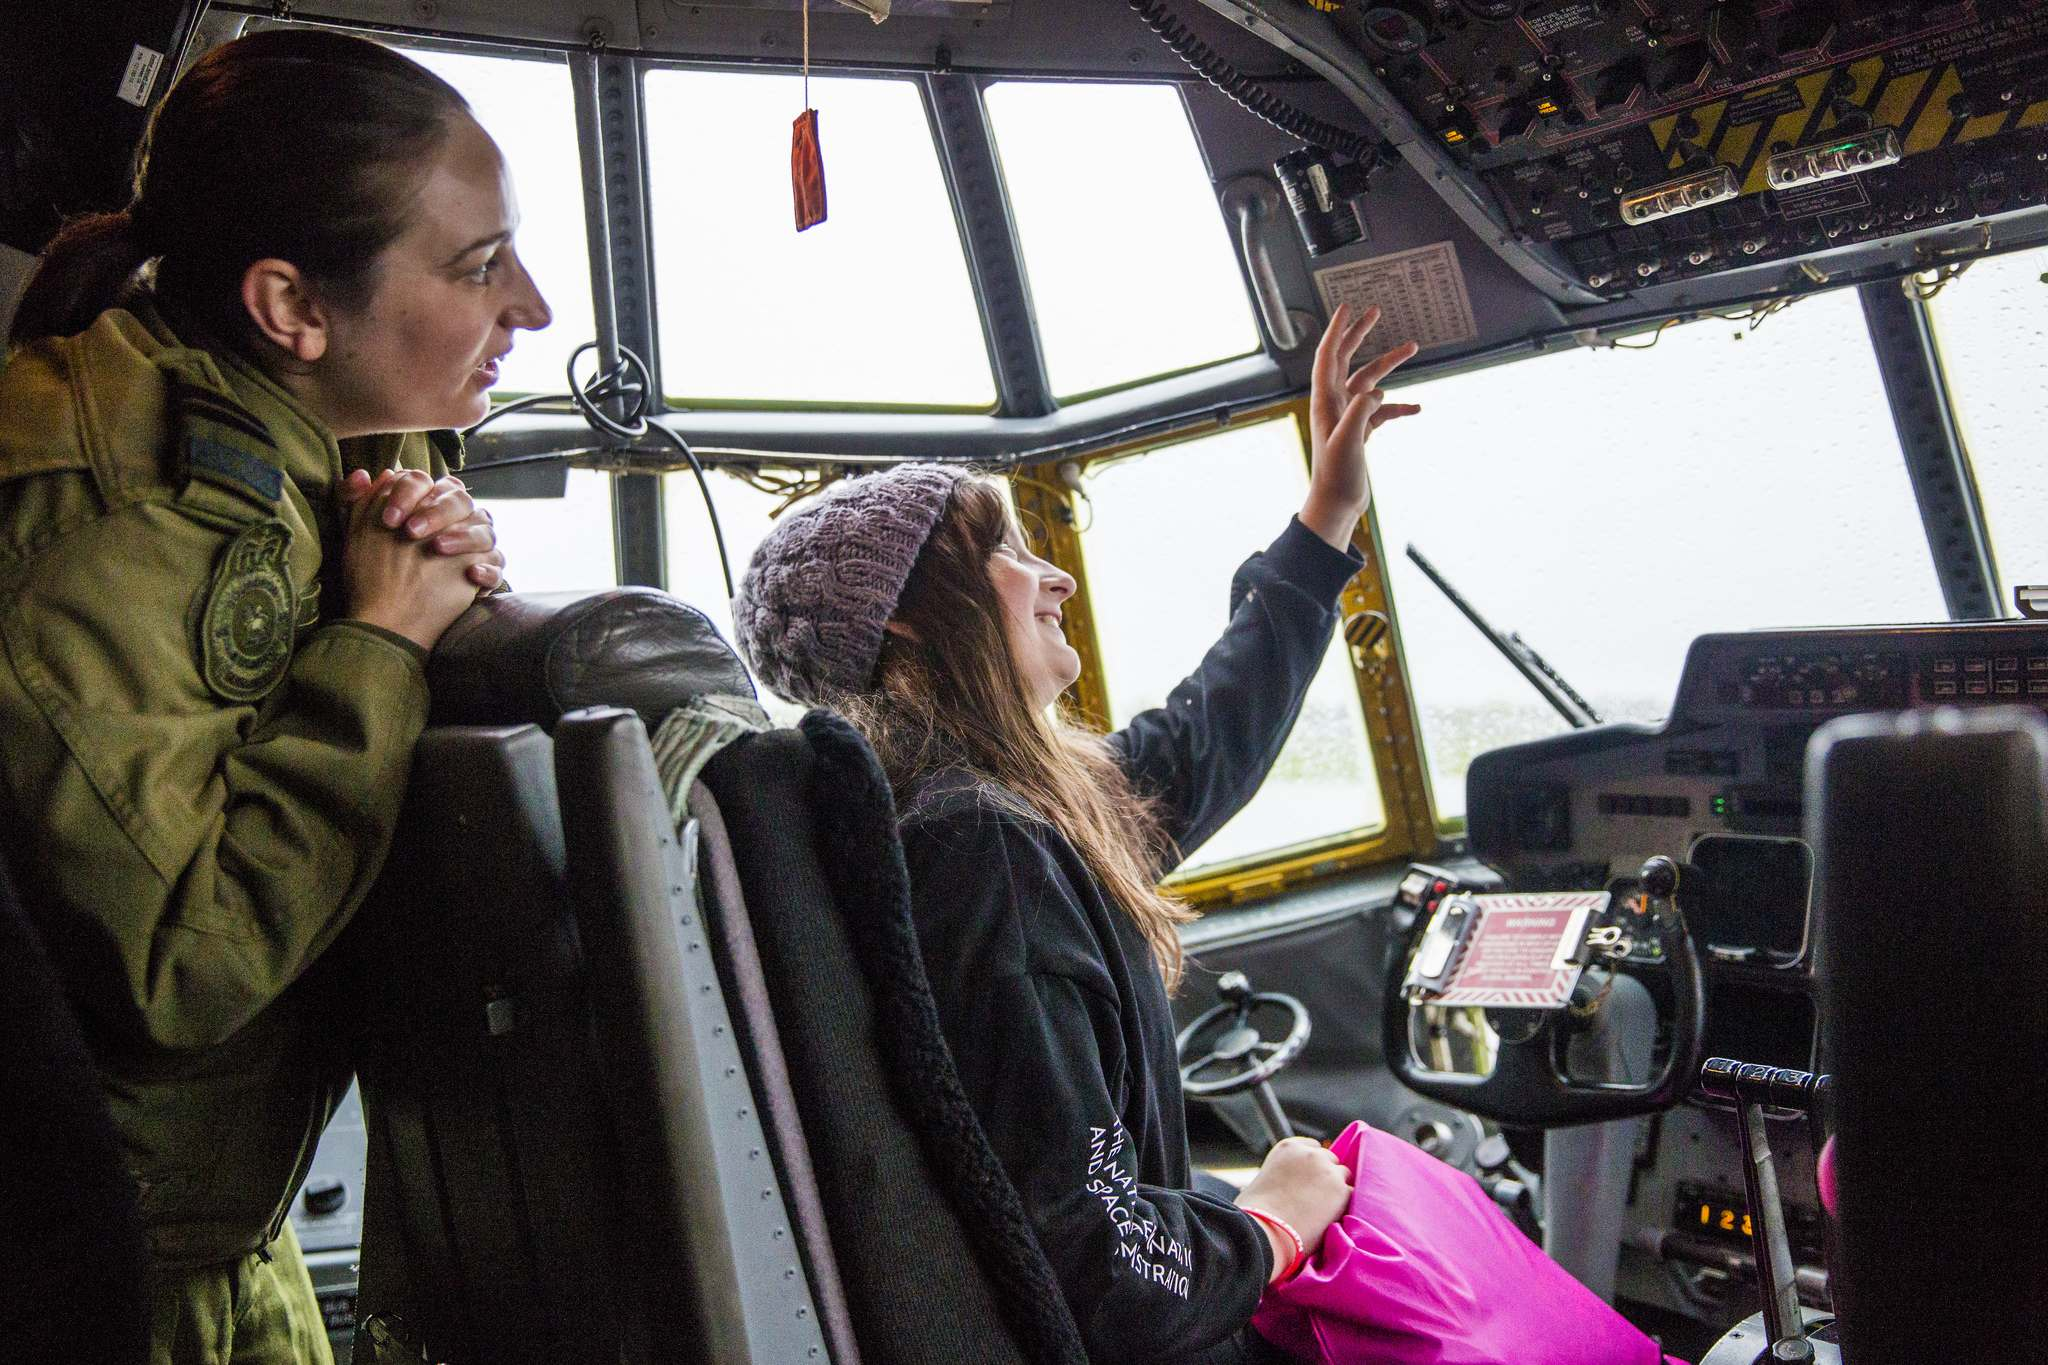 Pilot Hillory Gardiner shows future pilot Emily Slator, 10, around the cockpit of the Hercules at the fifth annual Girls in Aviation Day on Saturday. (Mikaela MacKenzie / Winnipeg Free Press)</p>